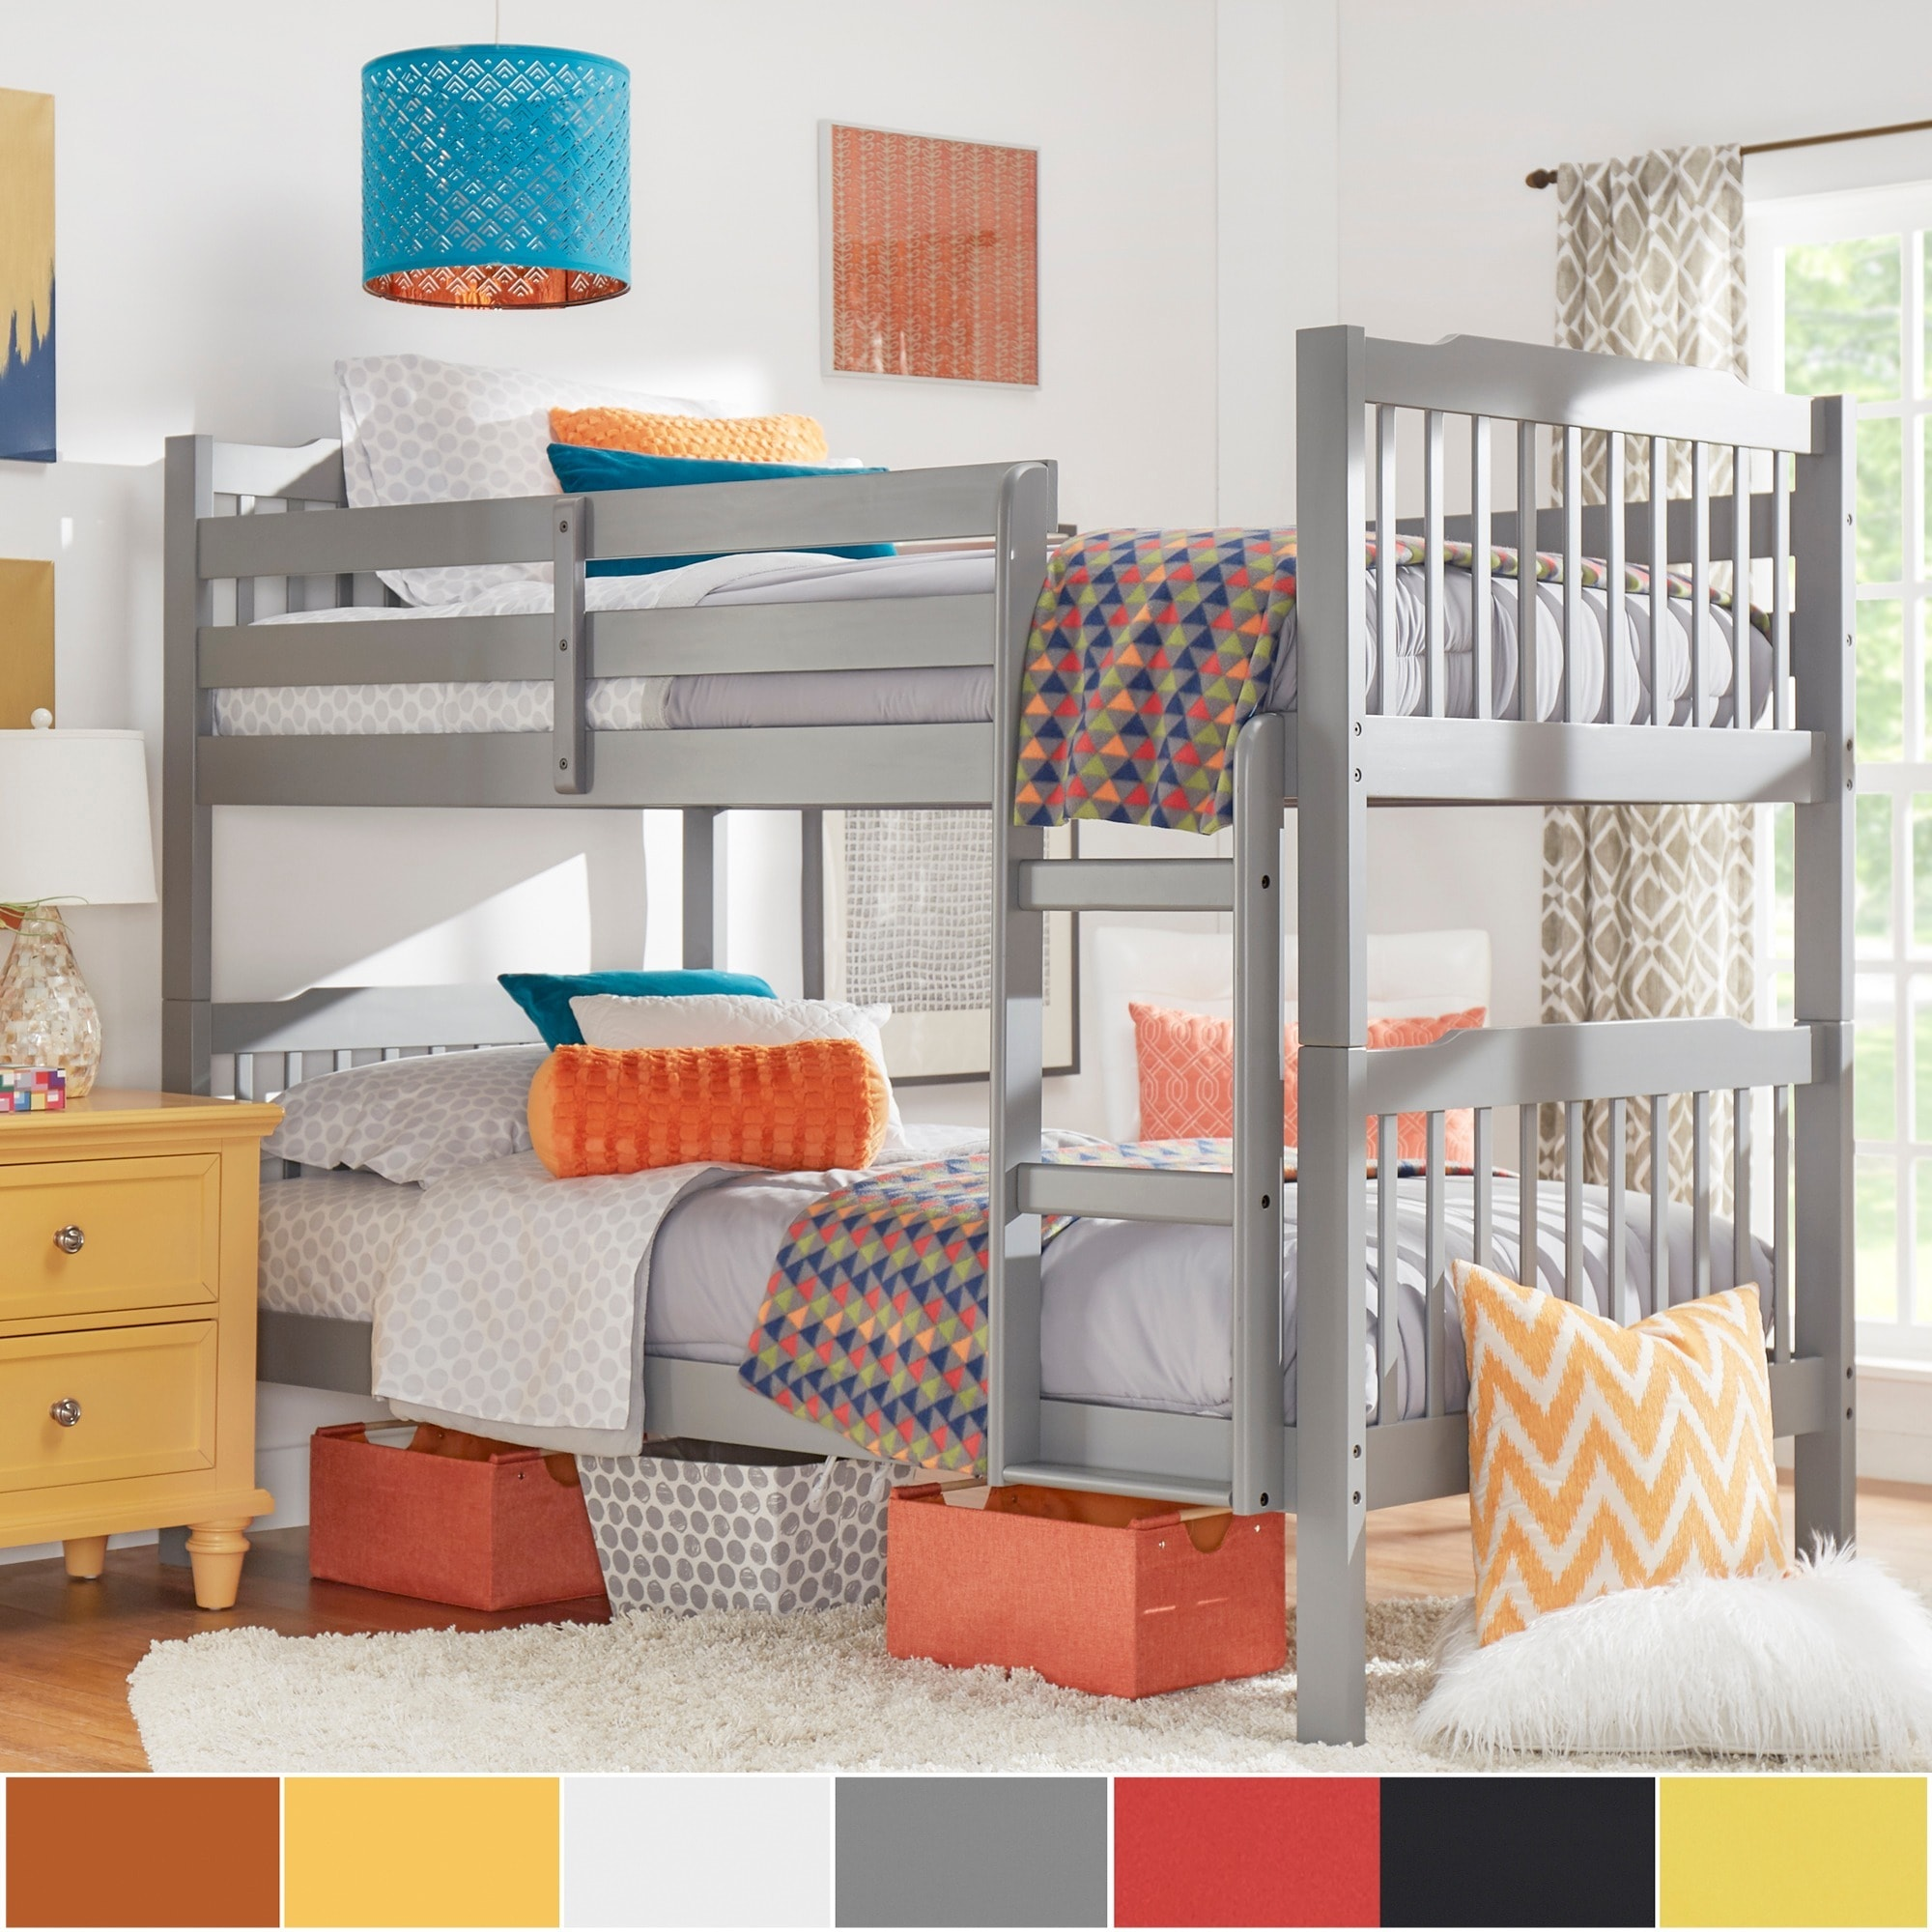 Shop Simone Twin and Twin Bunk Beds by iNSPIRE Q Junior - Free ... on teen bedroom desk, home bunk bed, teen bedroom chairs, office bunk bed, teen bedroom lamp, bedding bunk bed, teen bedroom mirror, teen bedroom loveseat, girls room bunk bed, sleep bunk bed, studio bunk bed, teen boy bedroom, garage bunk bed, furniture bunk bed, teen bedroom vanity, teen bedroom bathroom, closet bunk bed, family bunk bed, lamps bunk bed, teen bedroom loft,